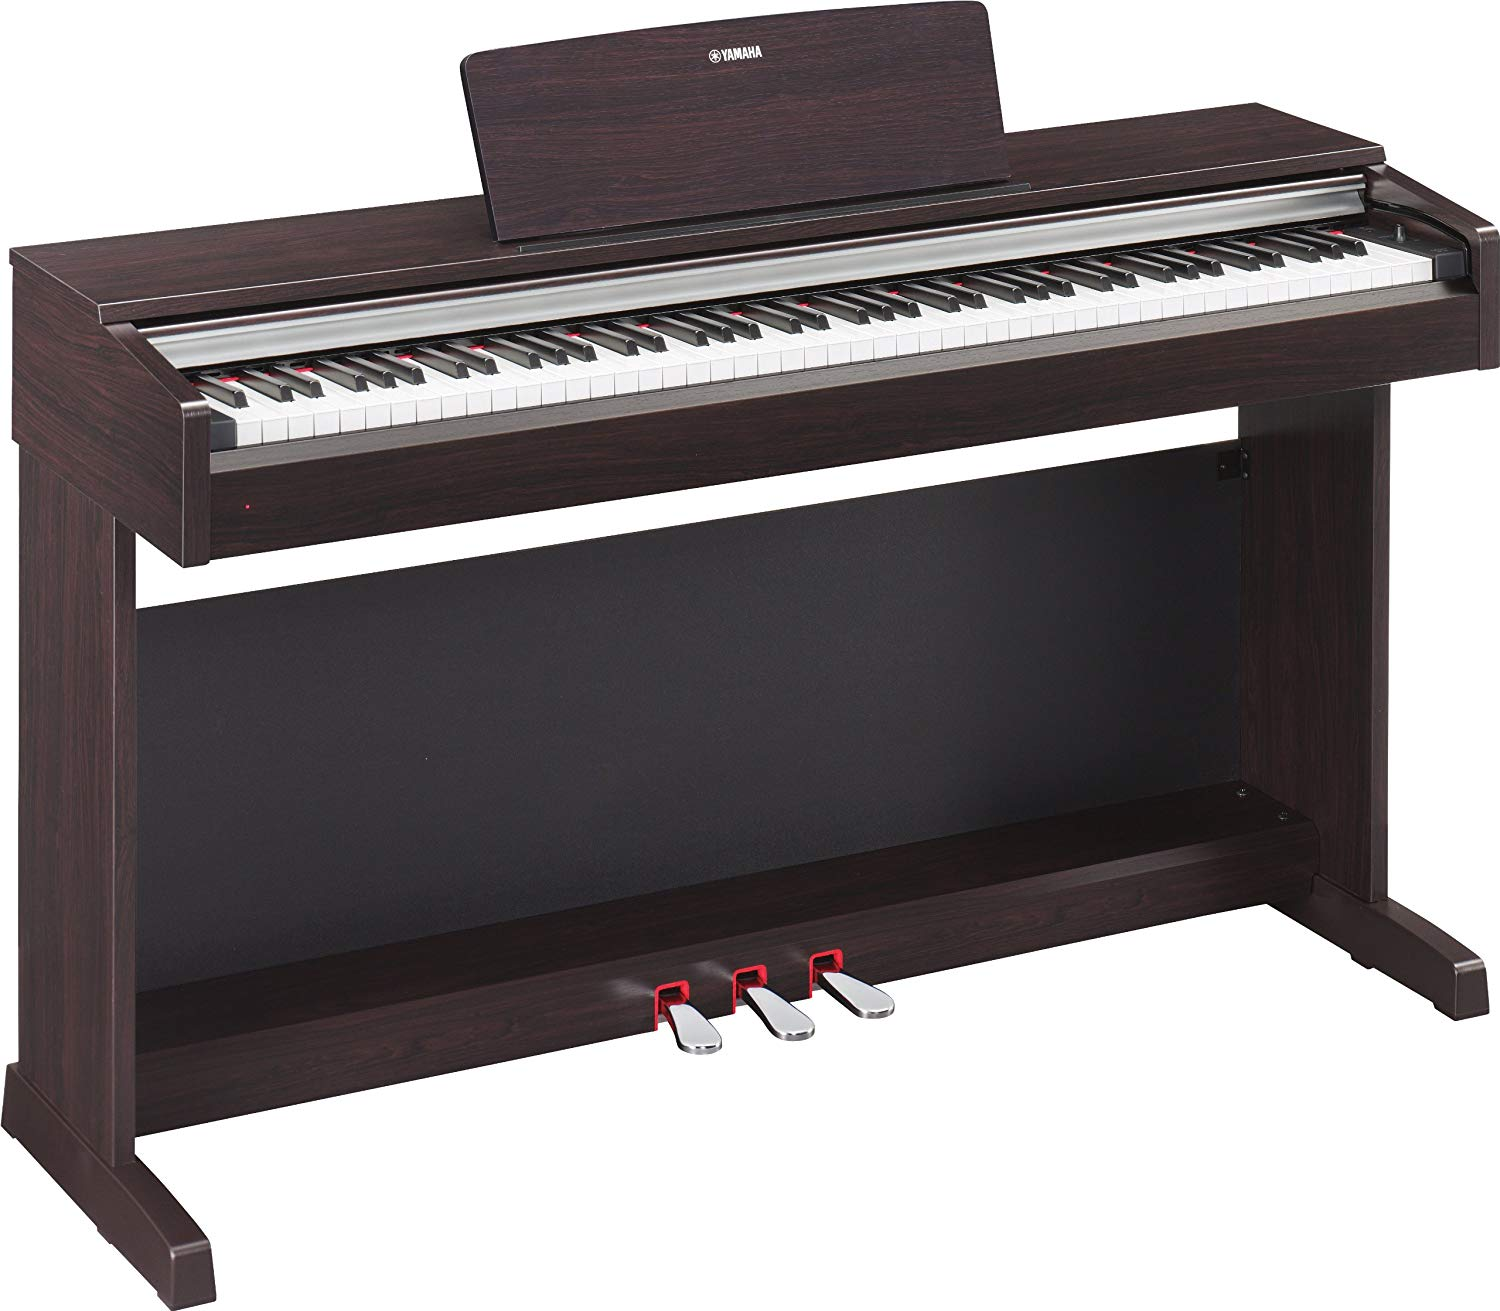 Yamaha Arius YDP-142R Digital Piano Review 2020